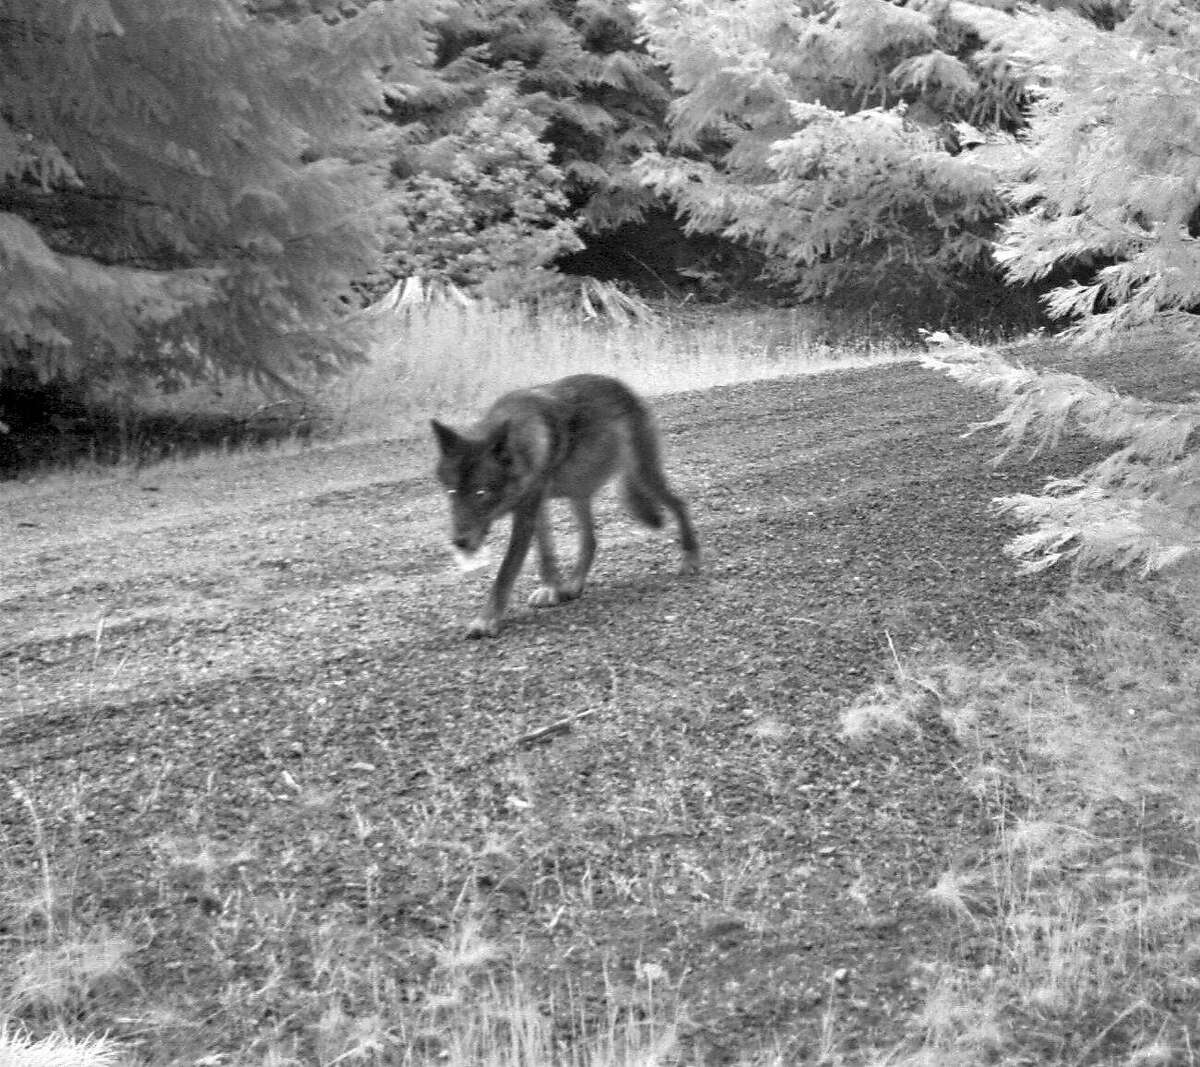 This July 12, 2014 image released by the U.S. Fish and Wildlife Service, shows what is believed to be the mate of OR-7 seen in a screen grab from a remote trail camera in Rogue River-Siskiyou National Forest, Ore. New photos show that Oregon's famous wandering wolf, OR-7, has at least three pups that he and a mate are raising in the Cascade Range of southern Oregon. U.S. Fish and Wildlife Service biologist John Stephenson said Friday, July 25, 2014 that the photos show two gray pups.The battery of the radio collar worn by OR-7, whose historic journey through California made him an international sensation, ran out in May 2015. Wildlife officials are going into the field and tracking howls to try to track him.(AP Photo/U.S. Fish and Wildlife Service)